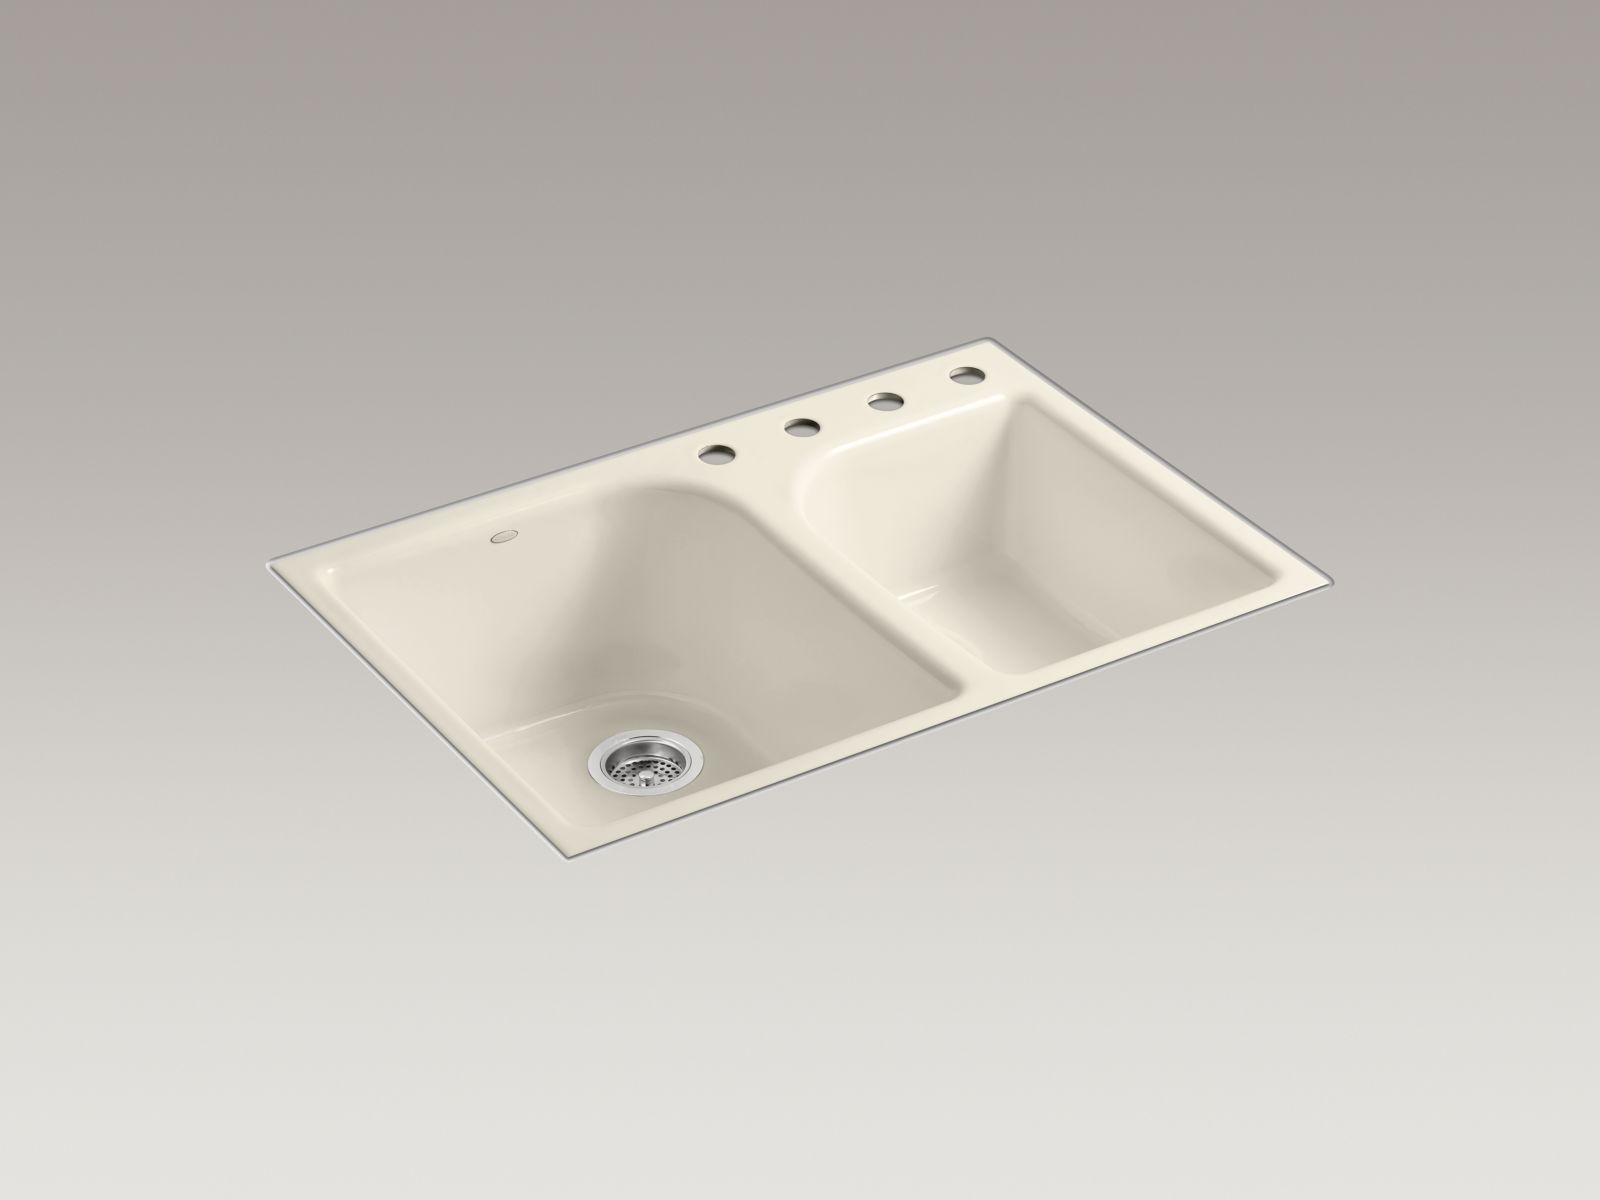 Kohler K-5931-4-47 Executive Chef Flush-mout Deep and Shallow Bowl Kitchen Sink with 4 Faucet Holes Almond